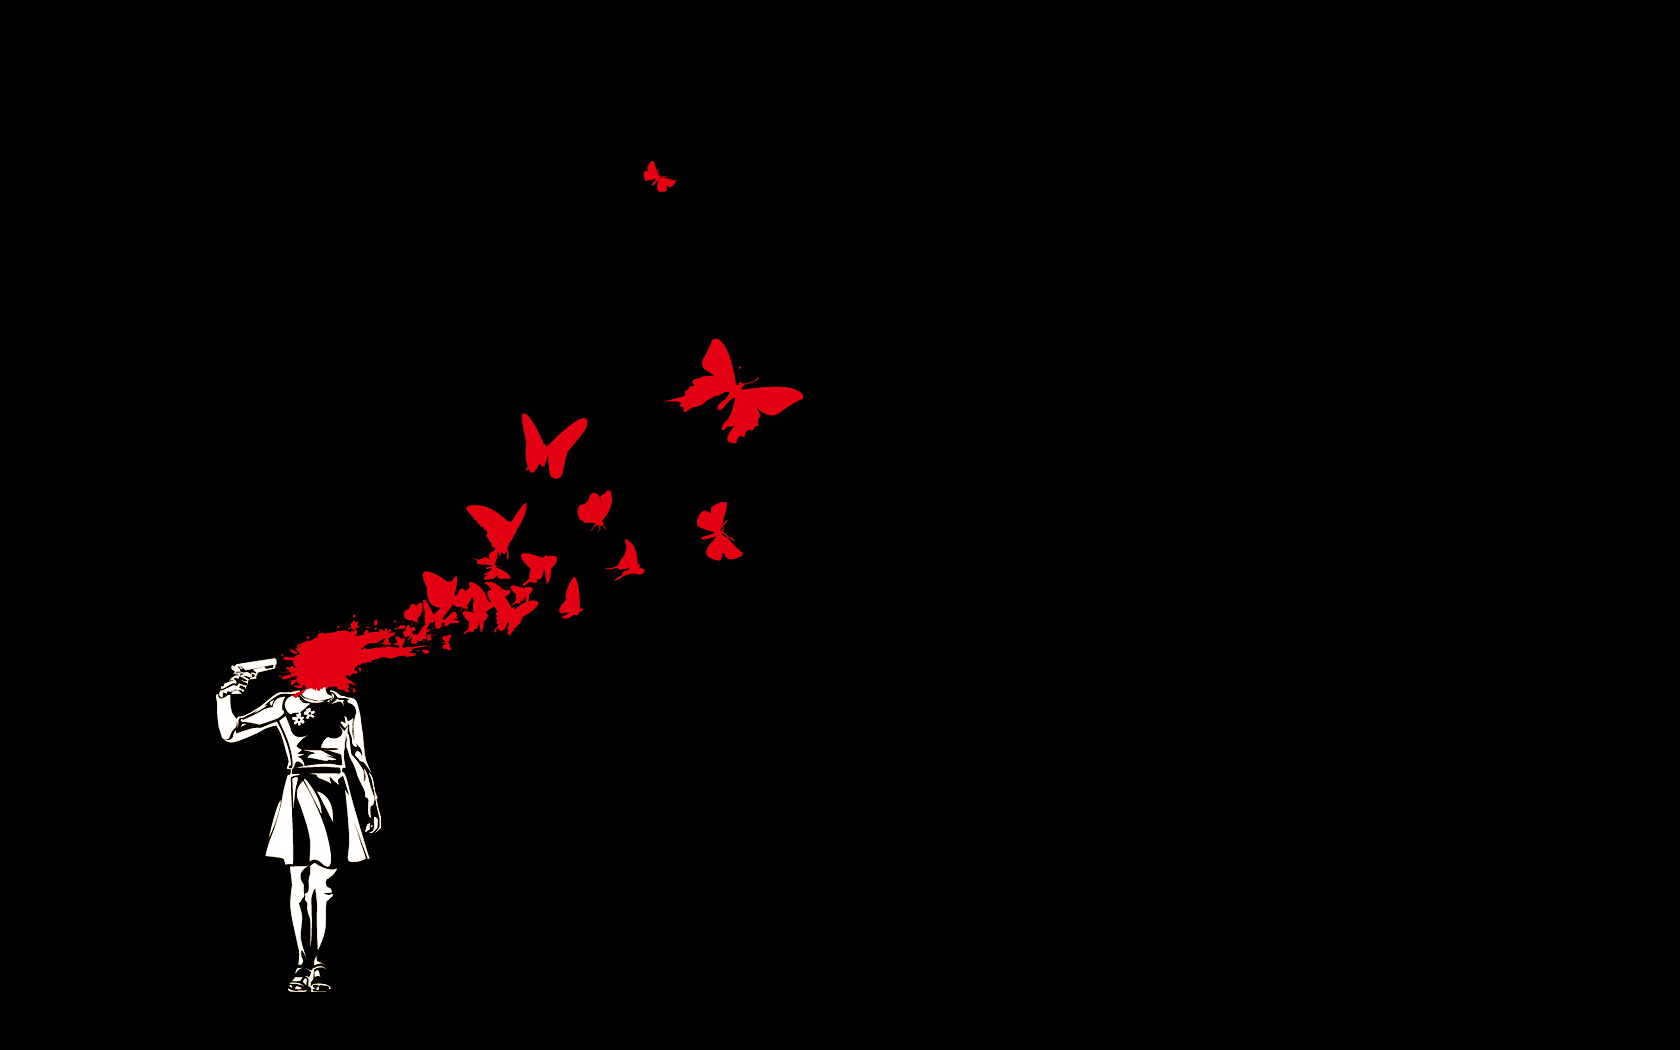 Dark Blood Wallpaper Dark Black Blood Butterfly Female Protagonist Persona3 Persona